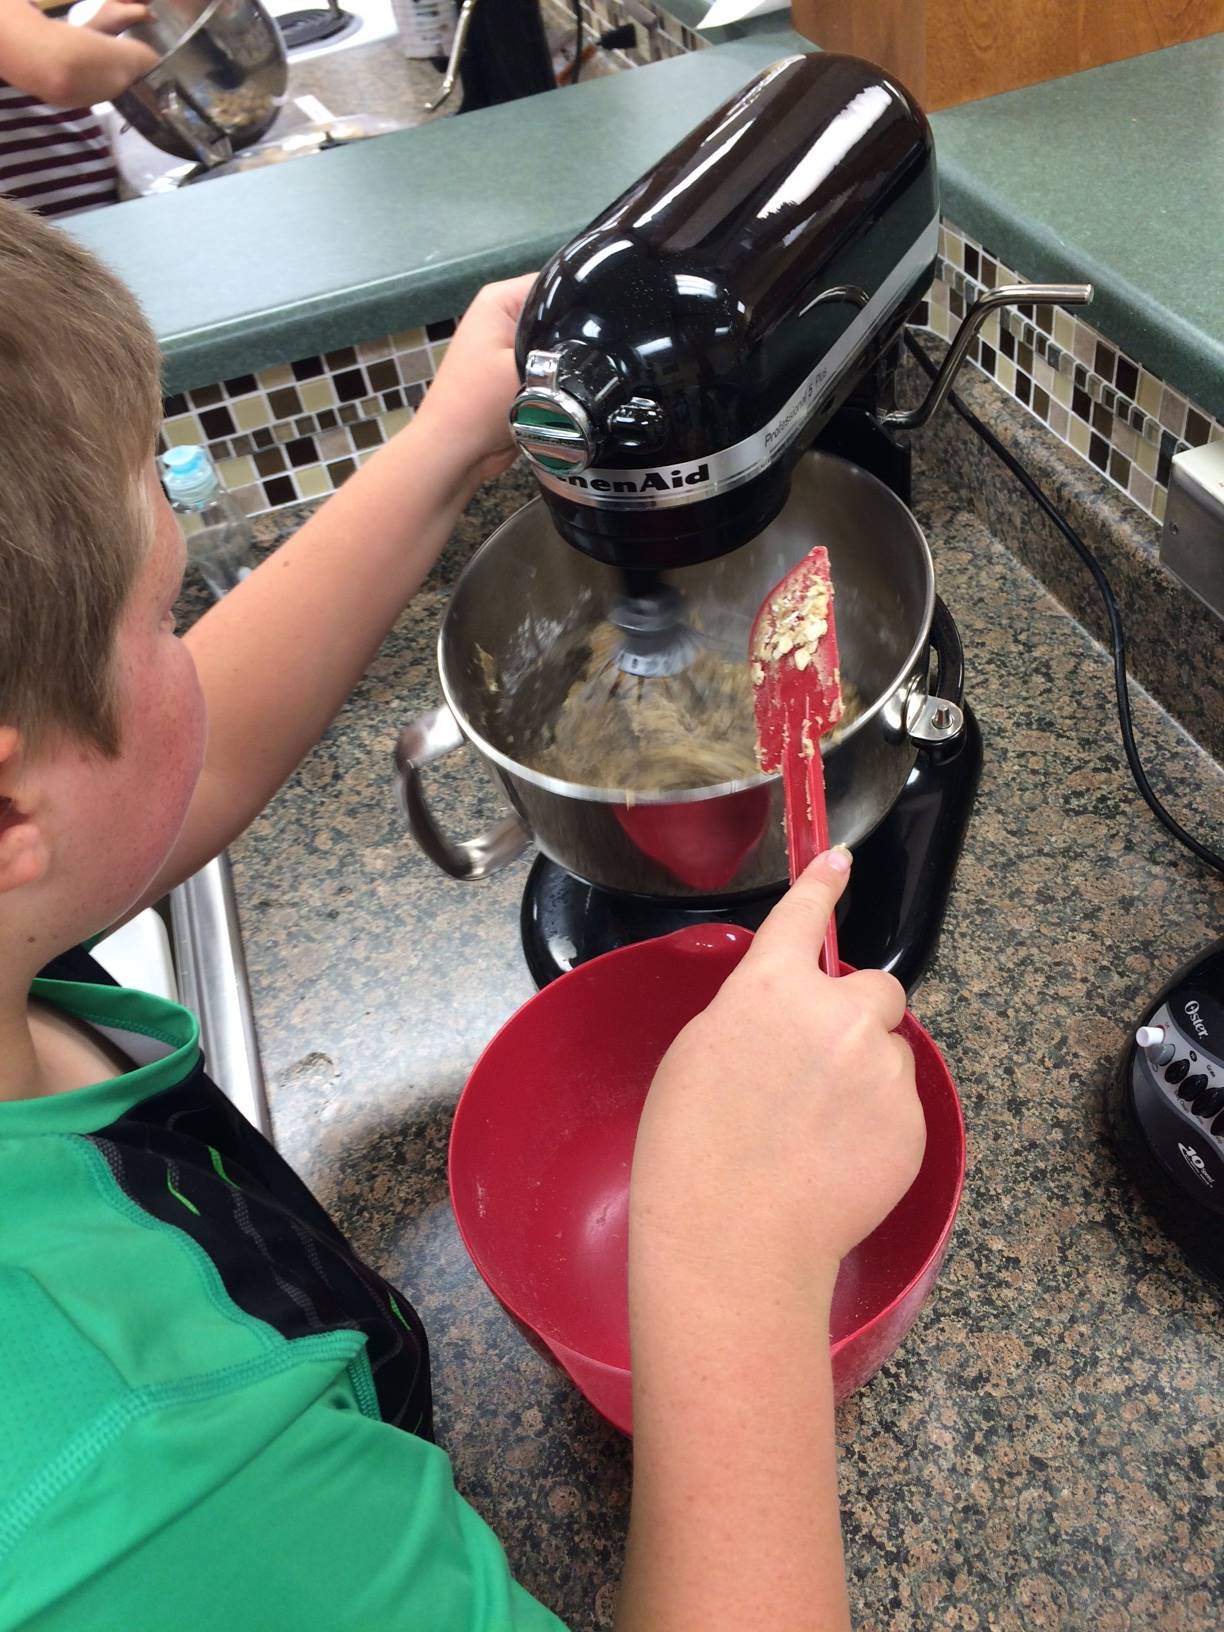 Learning to bake is fun, but kitchen safety is important.